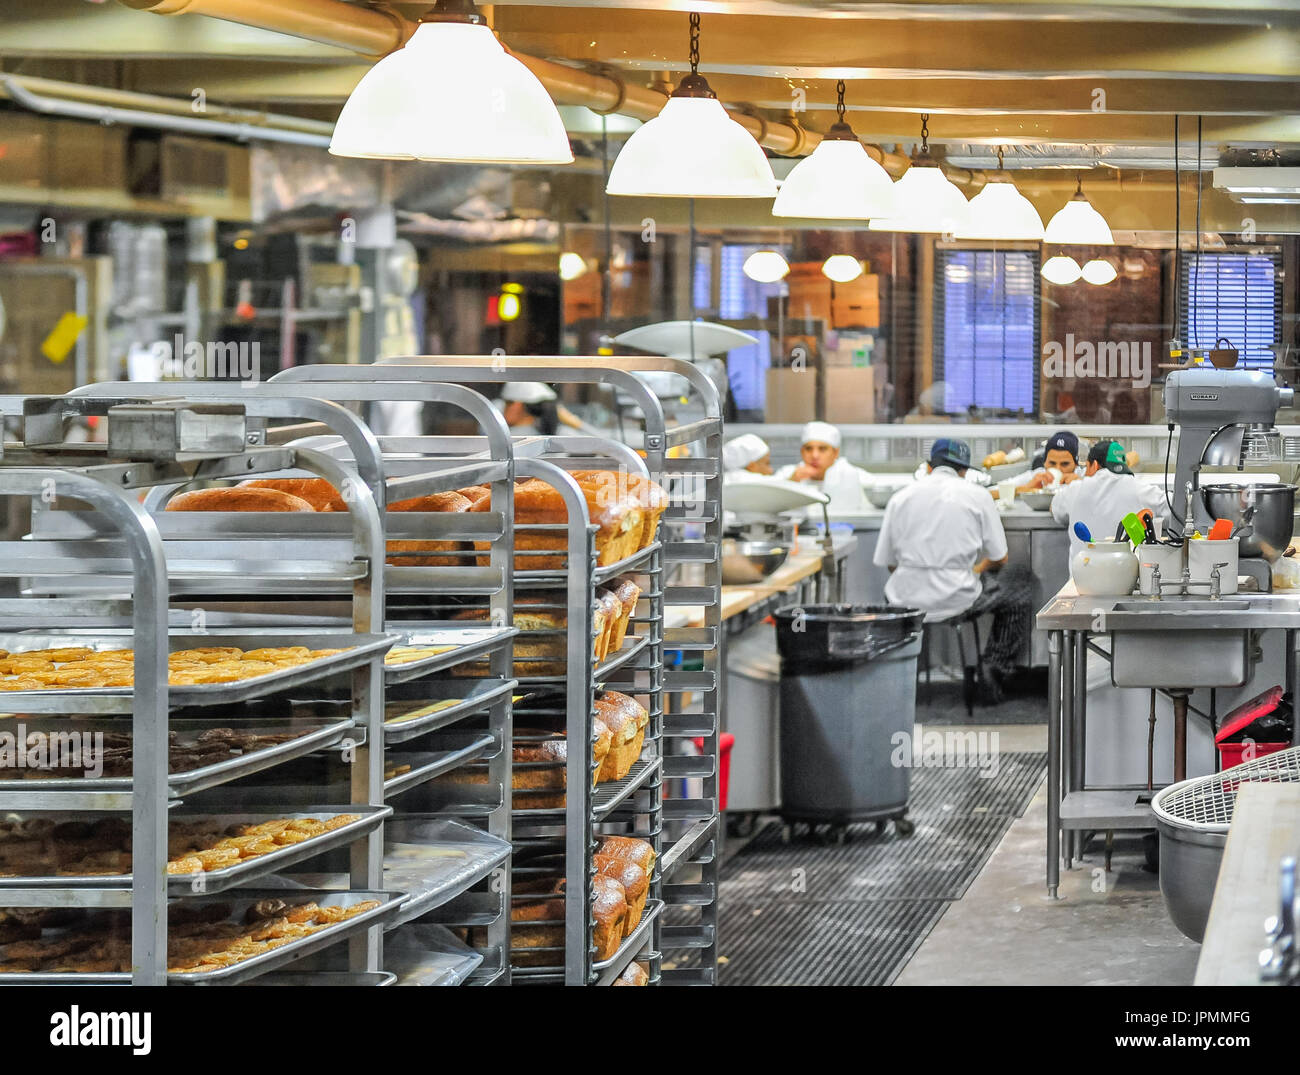 Bakery workers taking a coffee break at a Chelsea Market bakery in Manhattan. - Stock Image